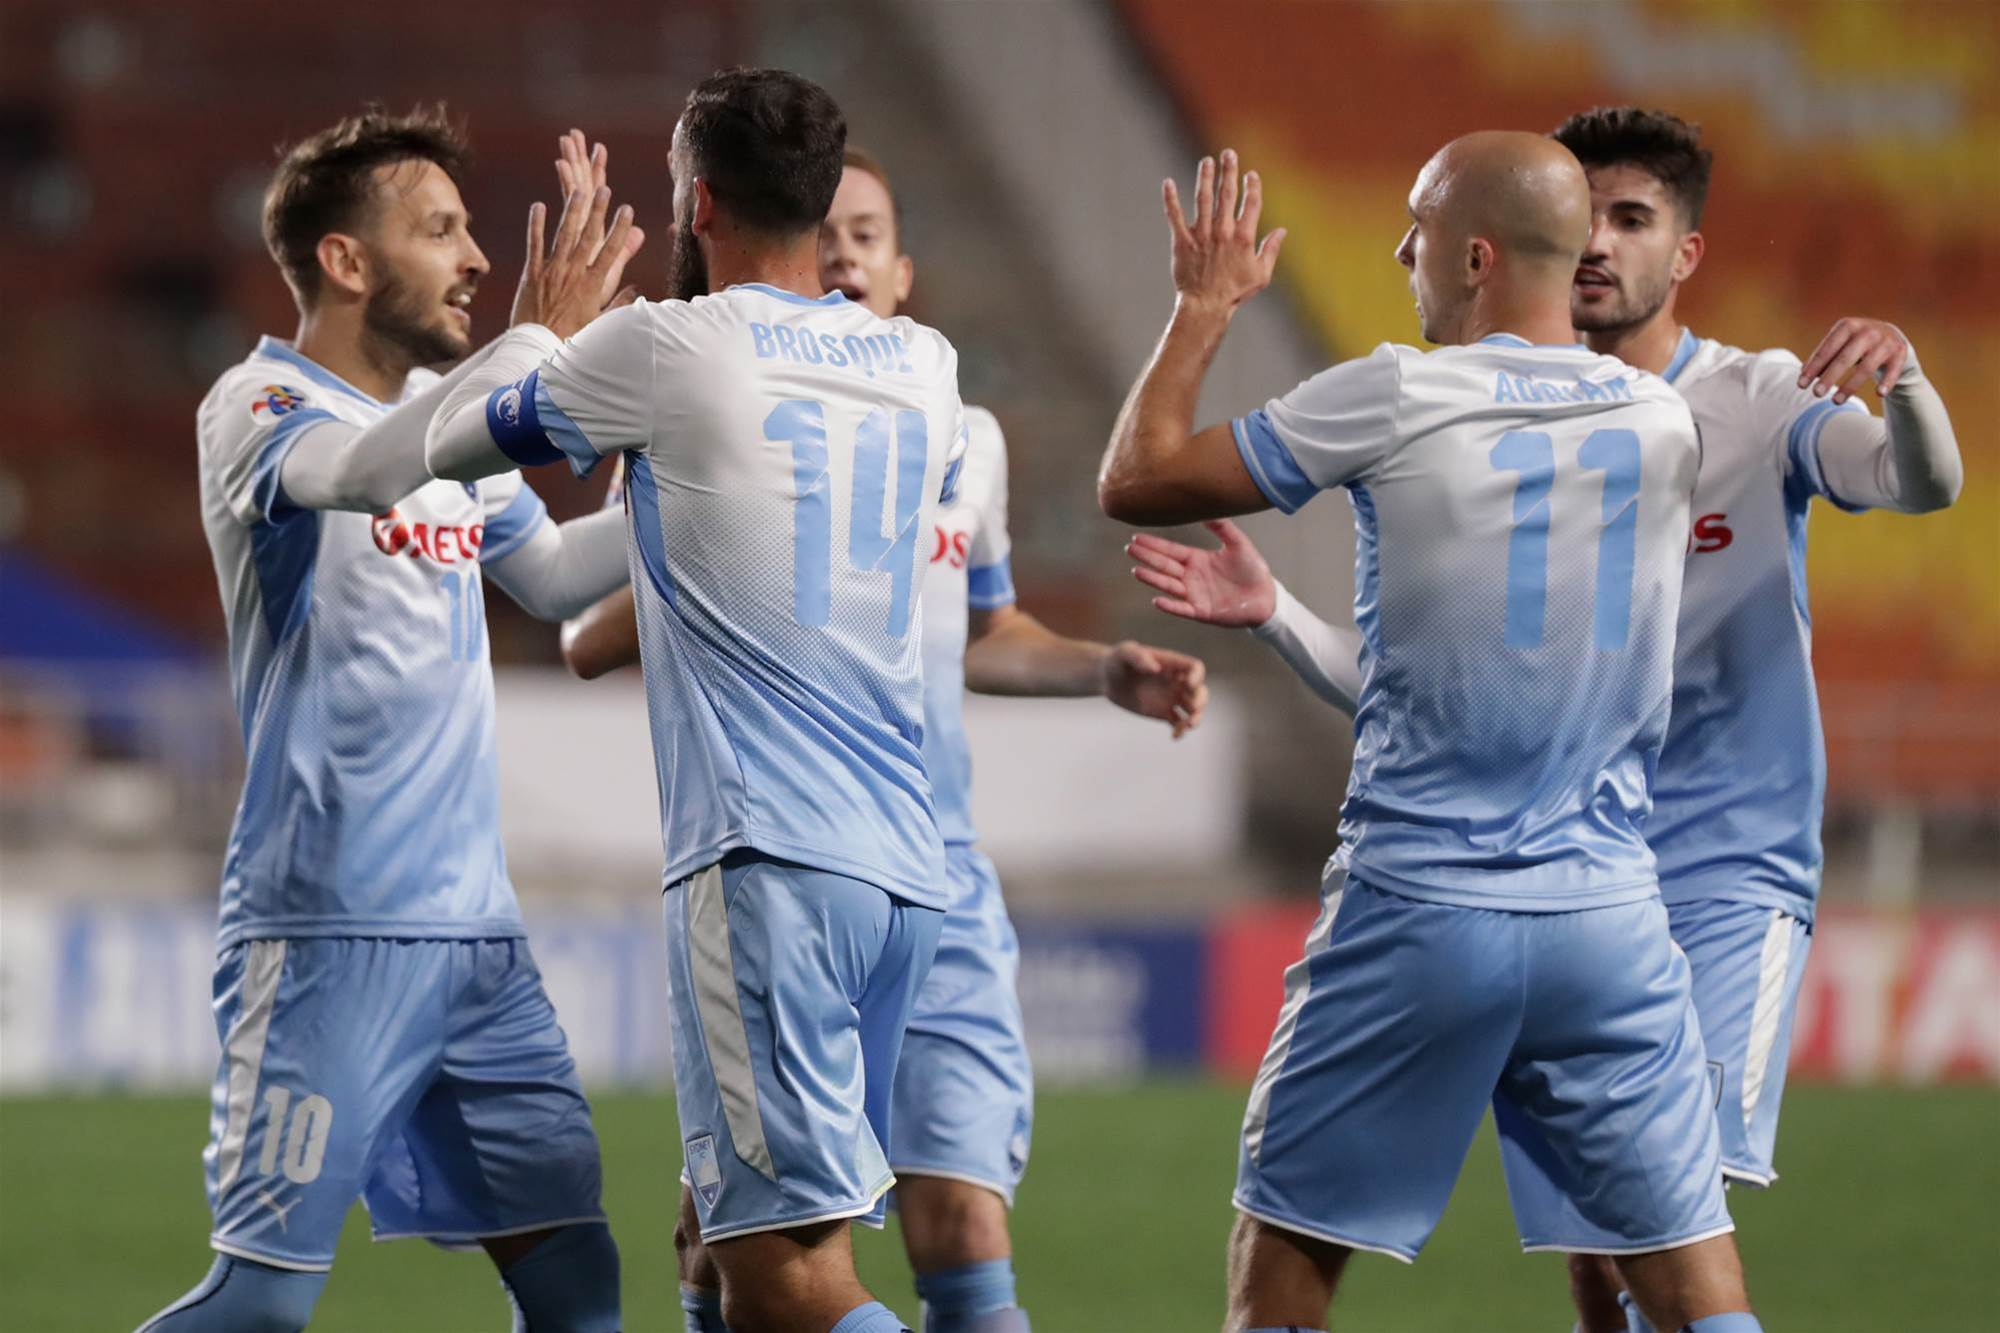 Suwone, Sydney four! Sky Blues storm back into ACL contention